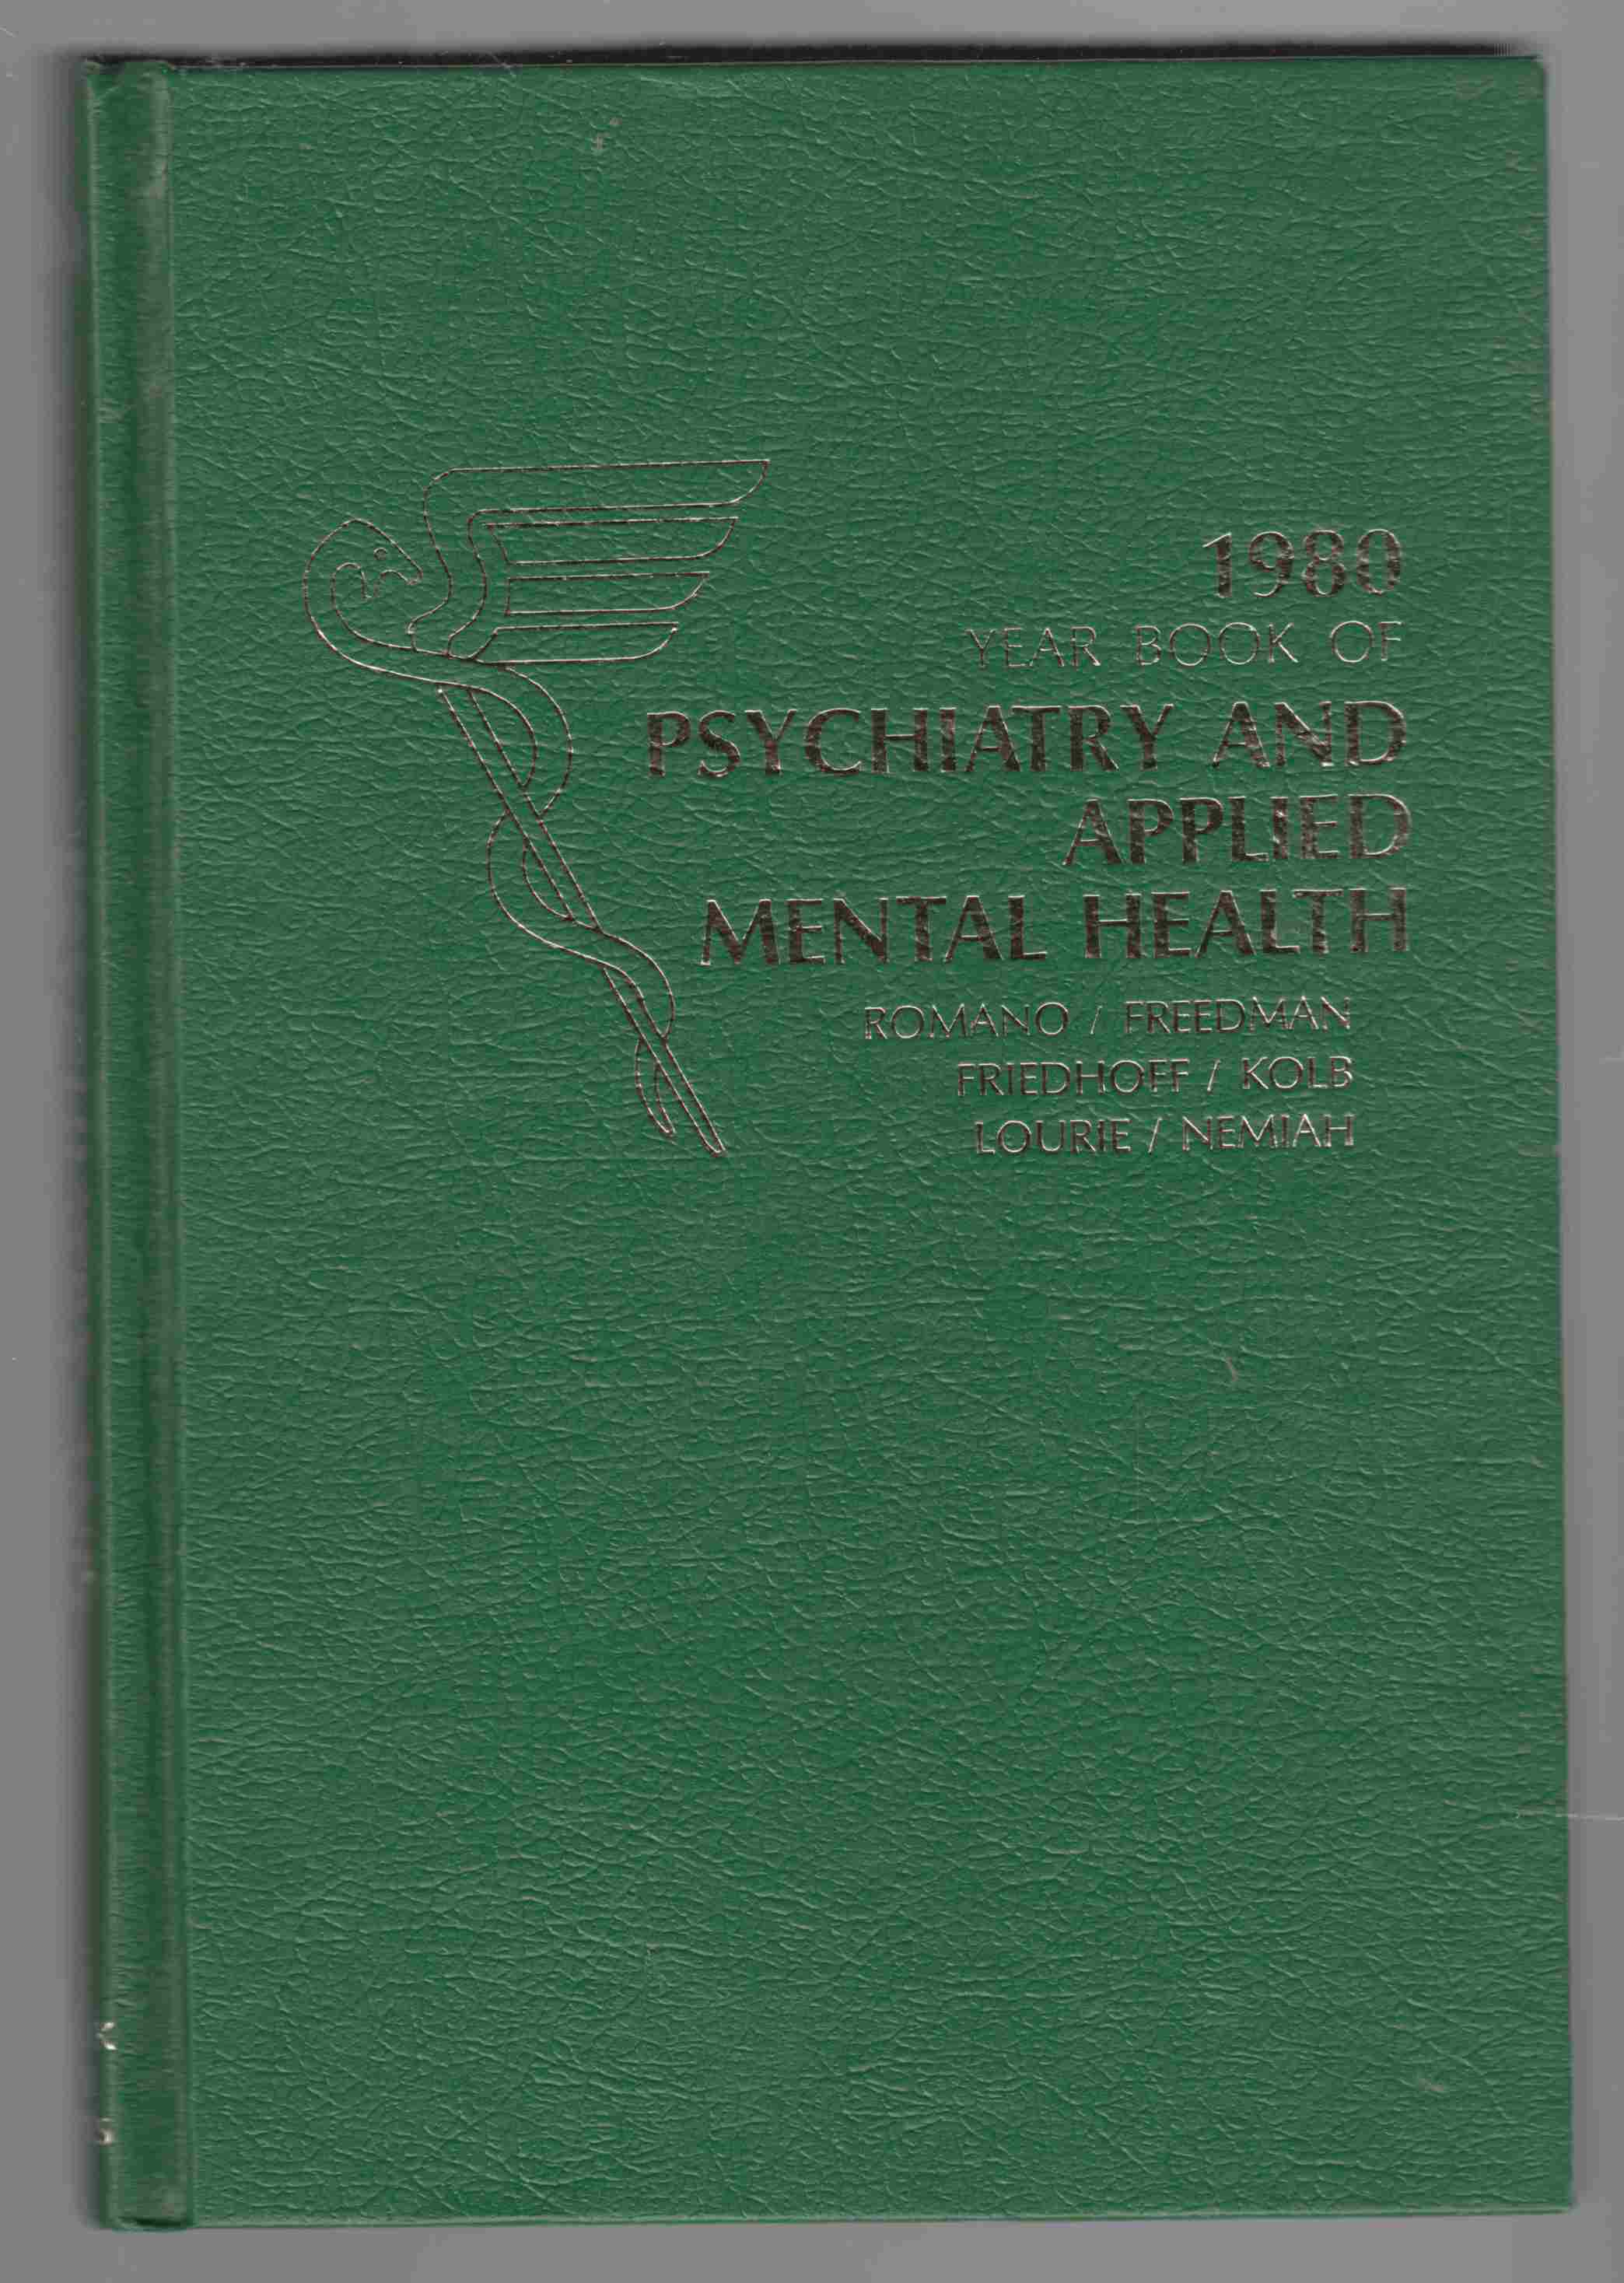 Image for The Year Book of Psychiatry and Applied Mental Health 1980